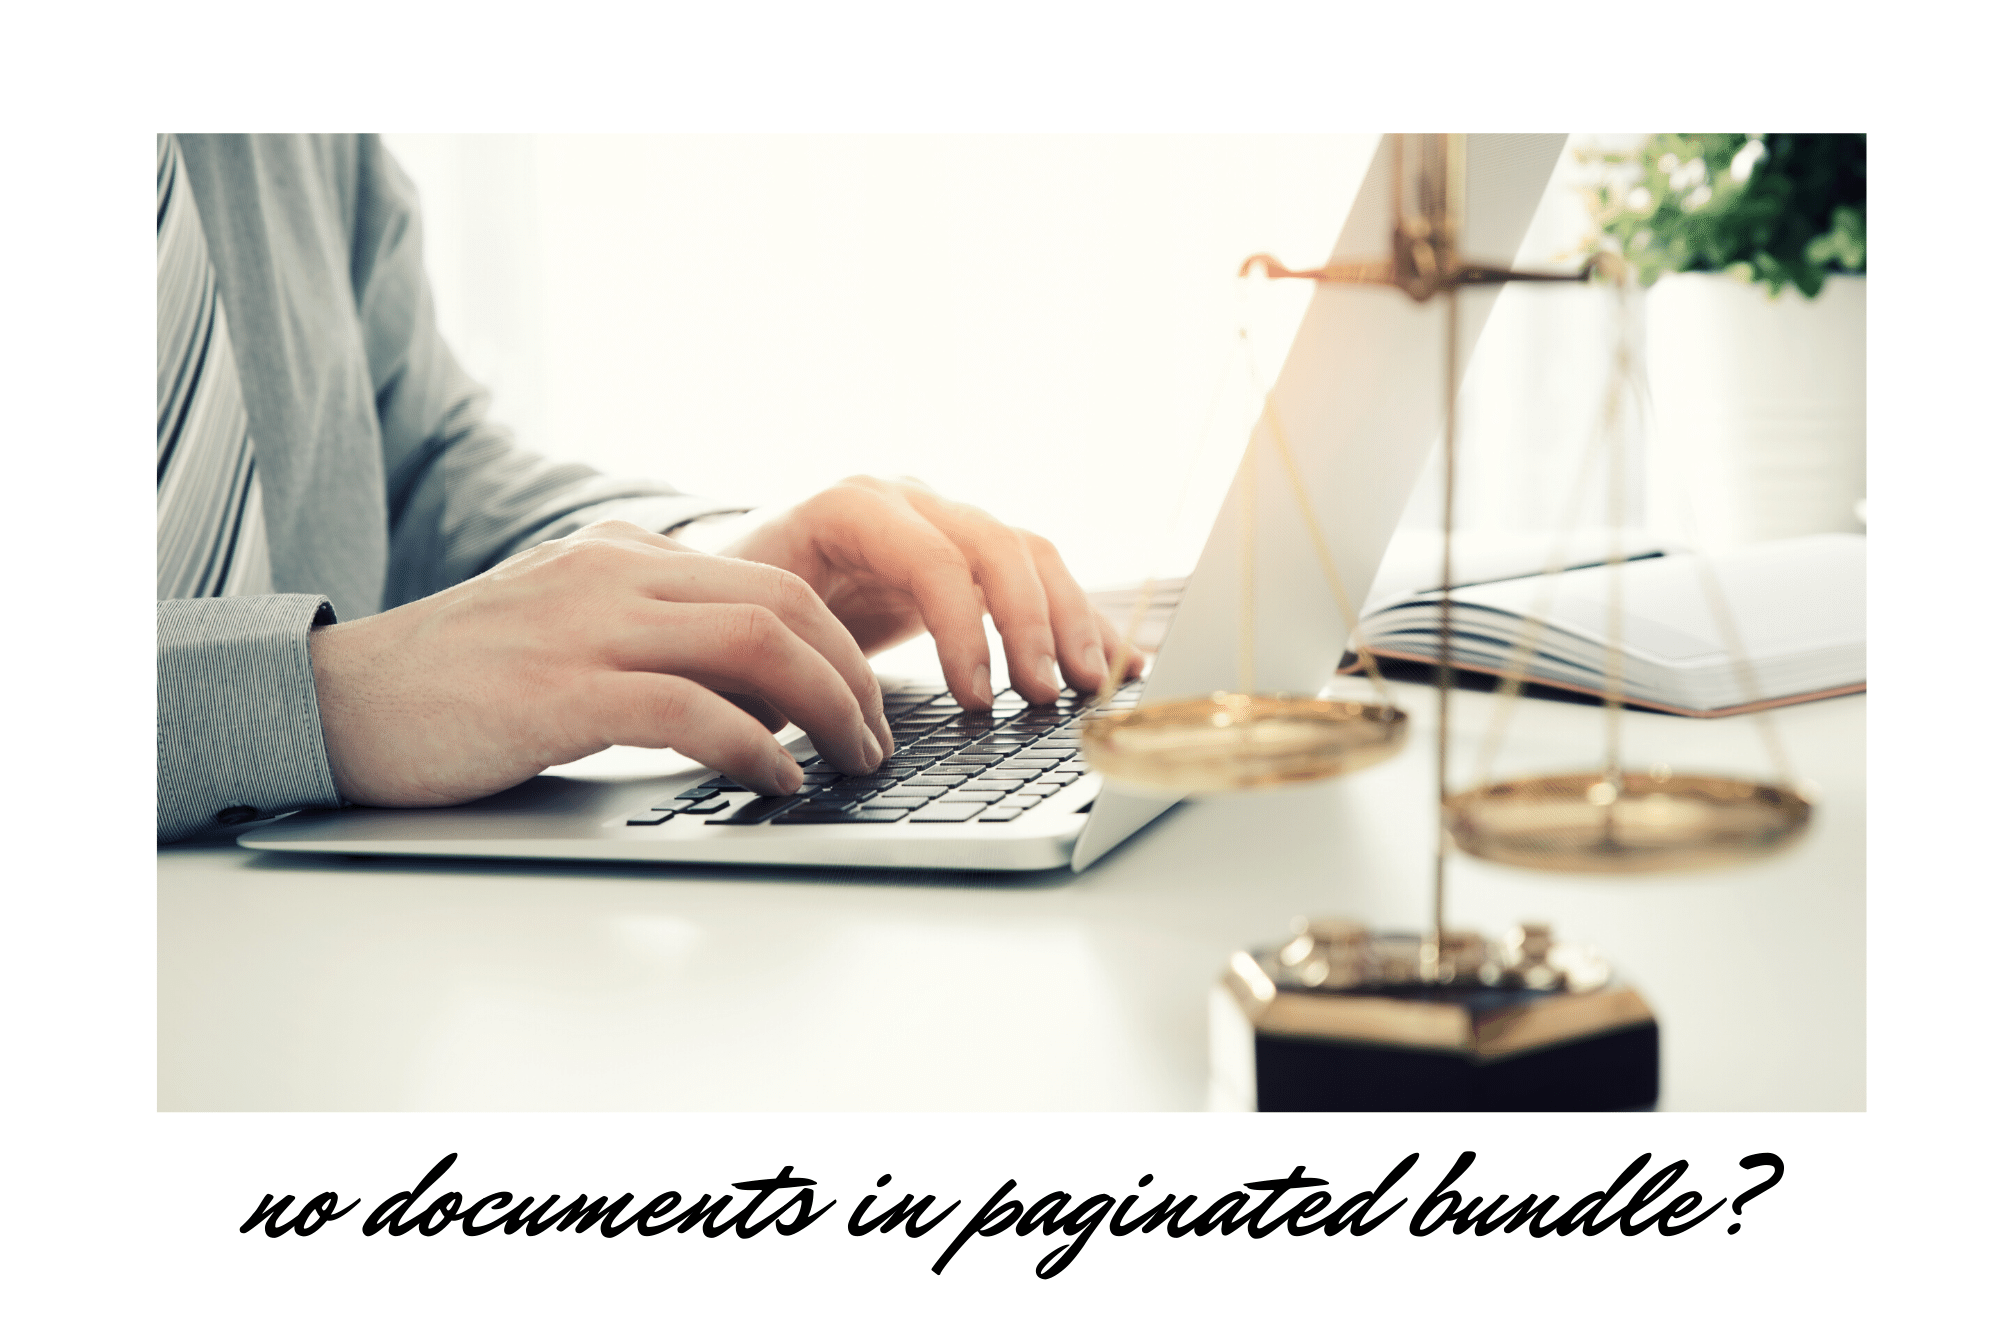 no documents in the paginated bundle